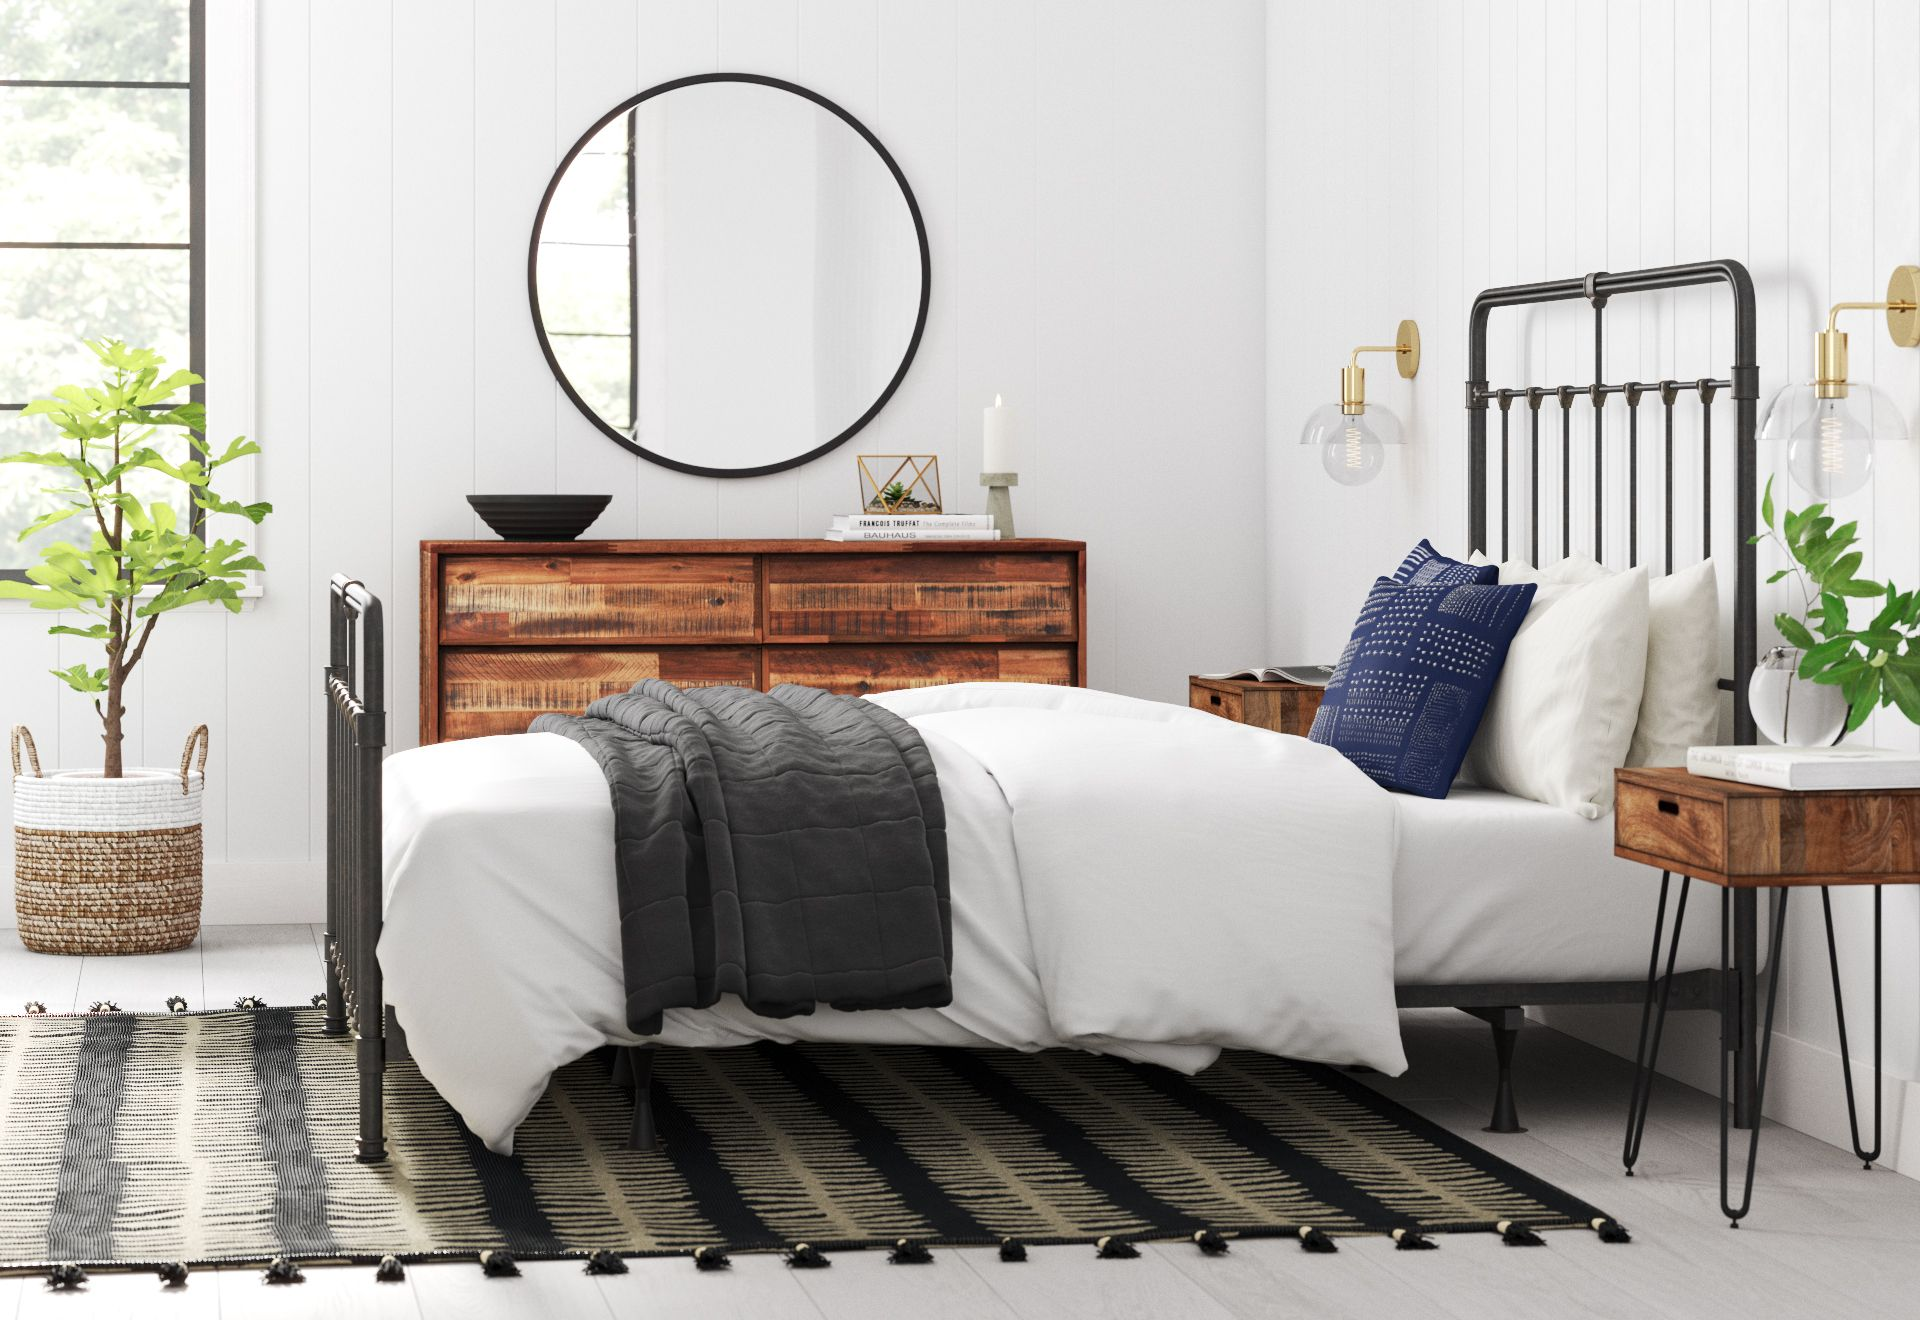 Industrial Bedroom Design  Industrial bedroom design, Bedroom